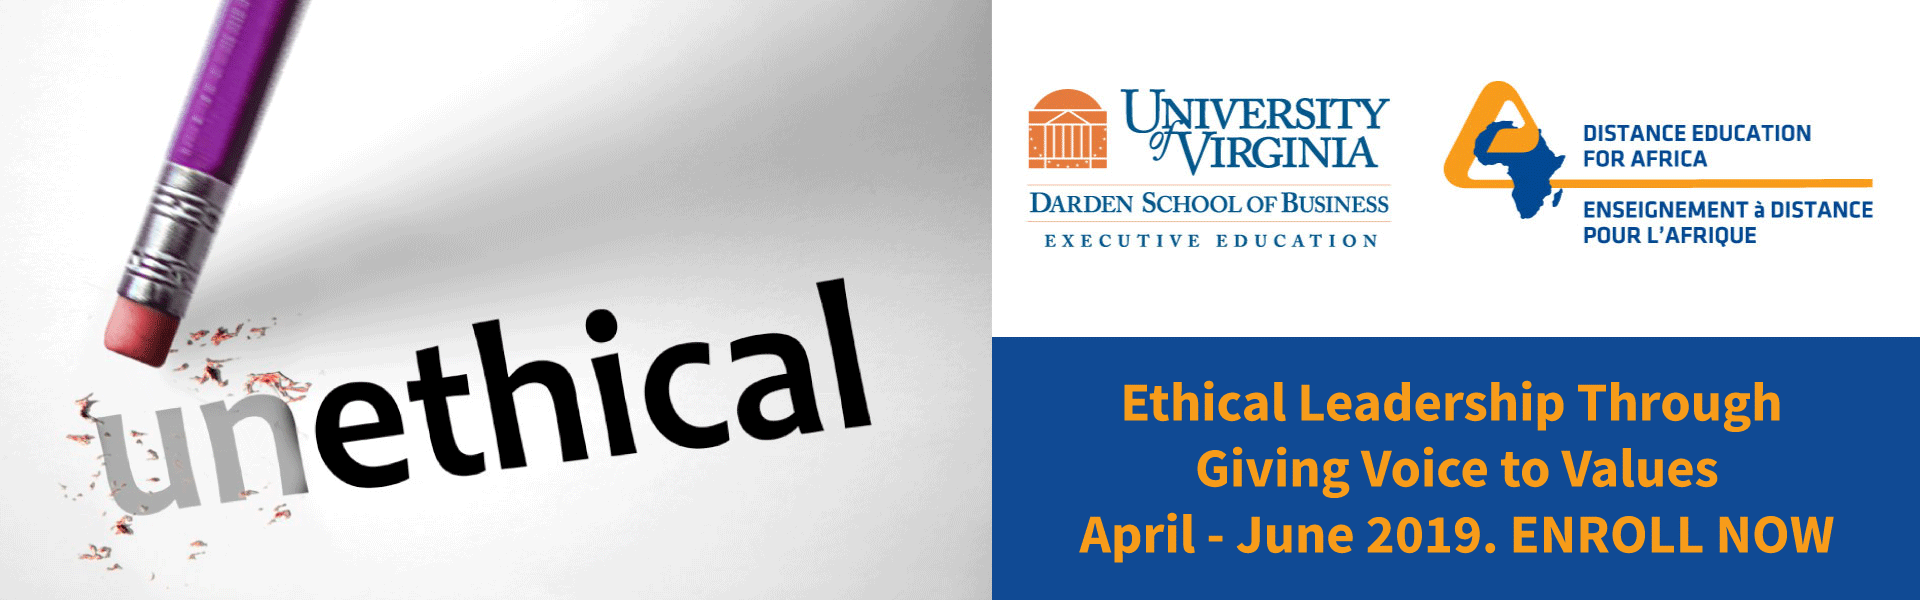 Ethical-Leadership-banner